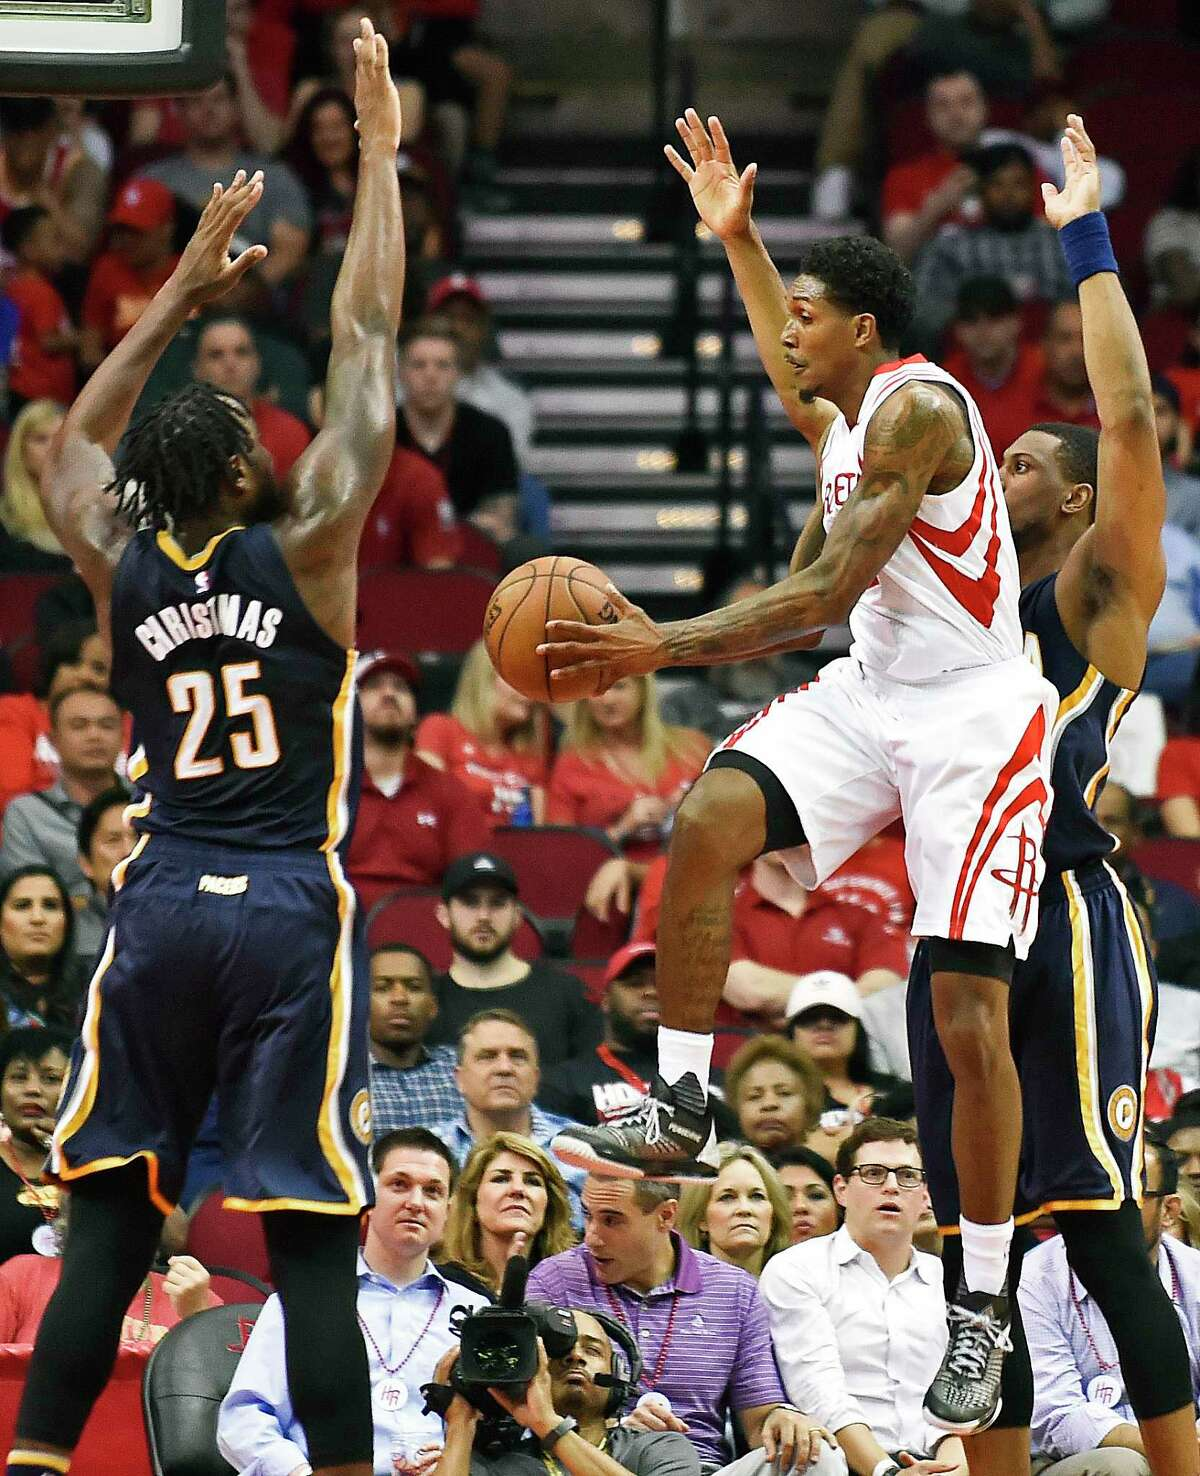 Houston Rockets guard Louis Williams, center, looks to pass as Indiana Pacers forwards Rakeem Christmas (25) and Thaddeus Young defend in the first half of an NBA basketball game, Monday, Feb. 27, 2017, in Houston. (AP Photo/Eric Christian Smith)